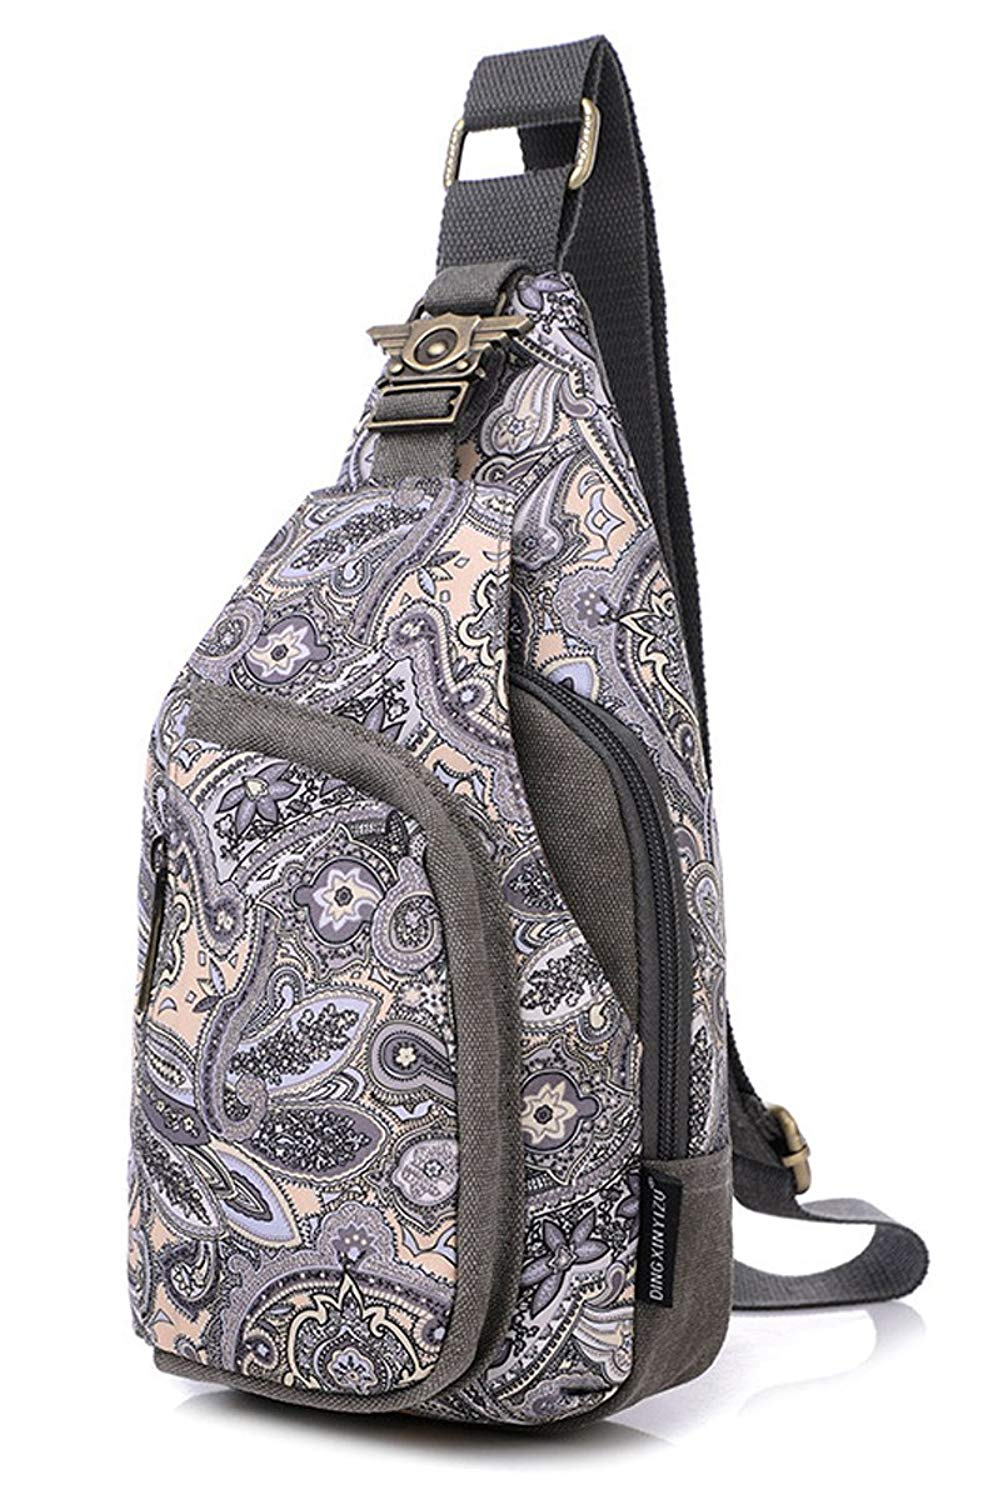 Paisley Multi-function Sling Bag Chest Shoulder Backpack for Women,girls